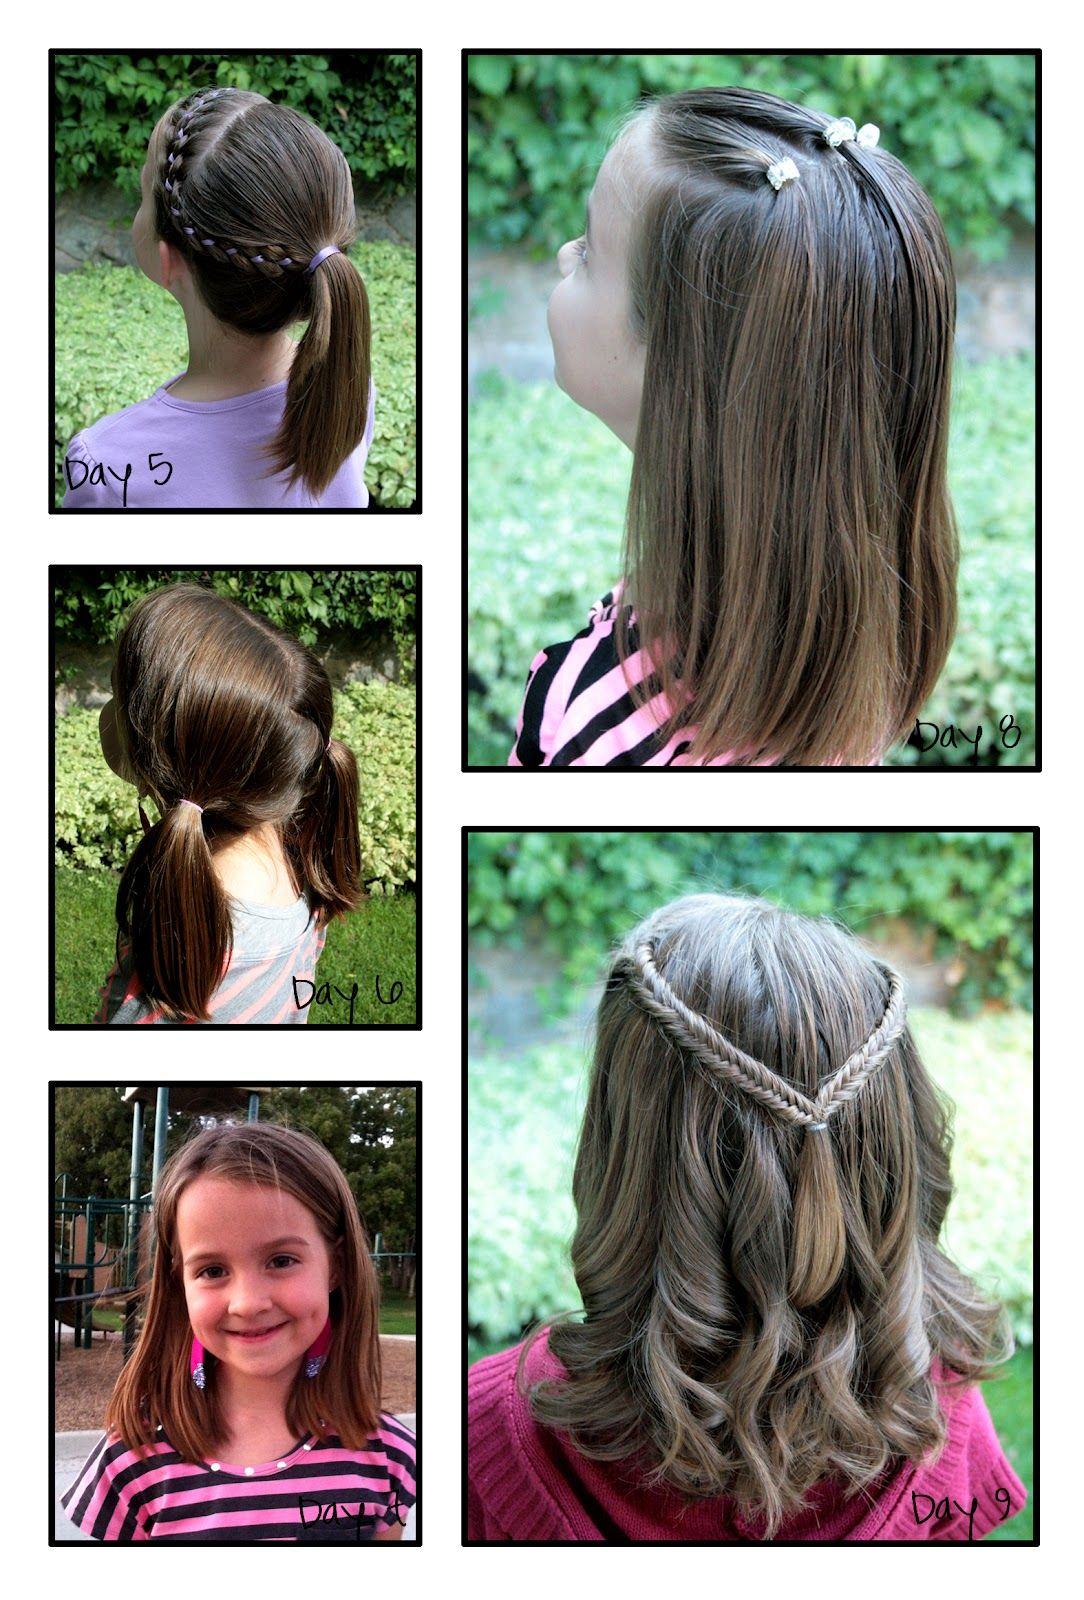 Sensational 1000 Images About Cute Hair On Pinterest Cute Kids Hairstyles Hairstyles For Women Draintrainus